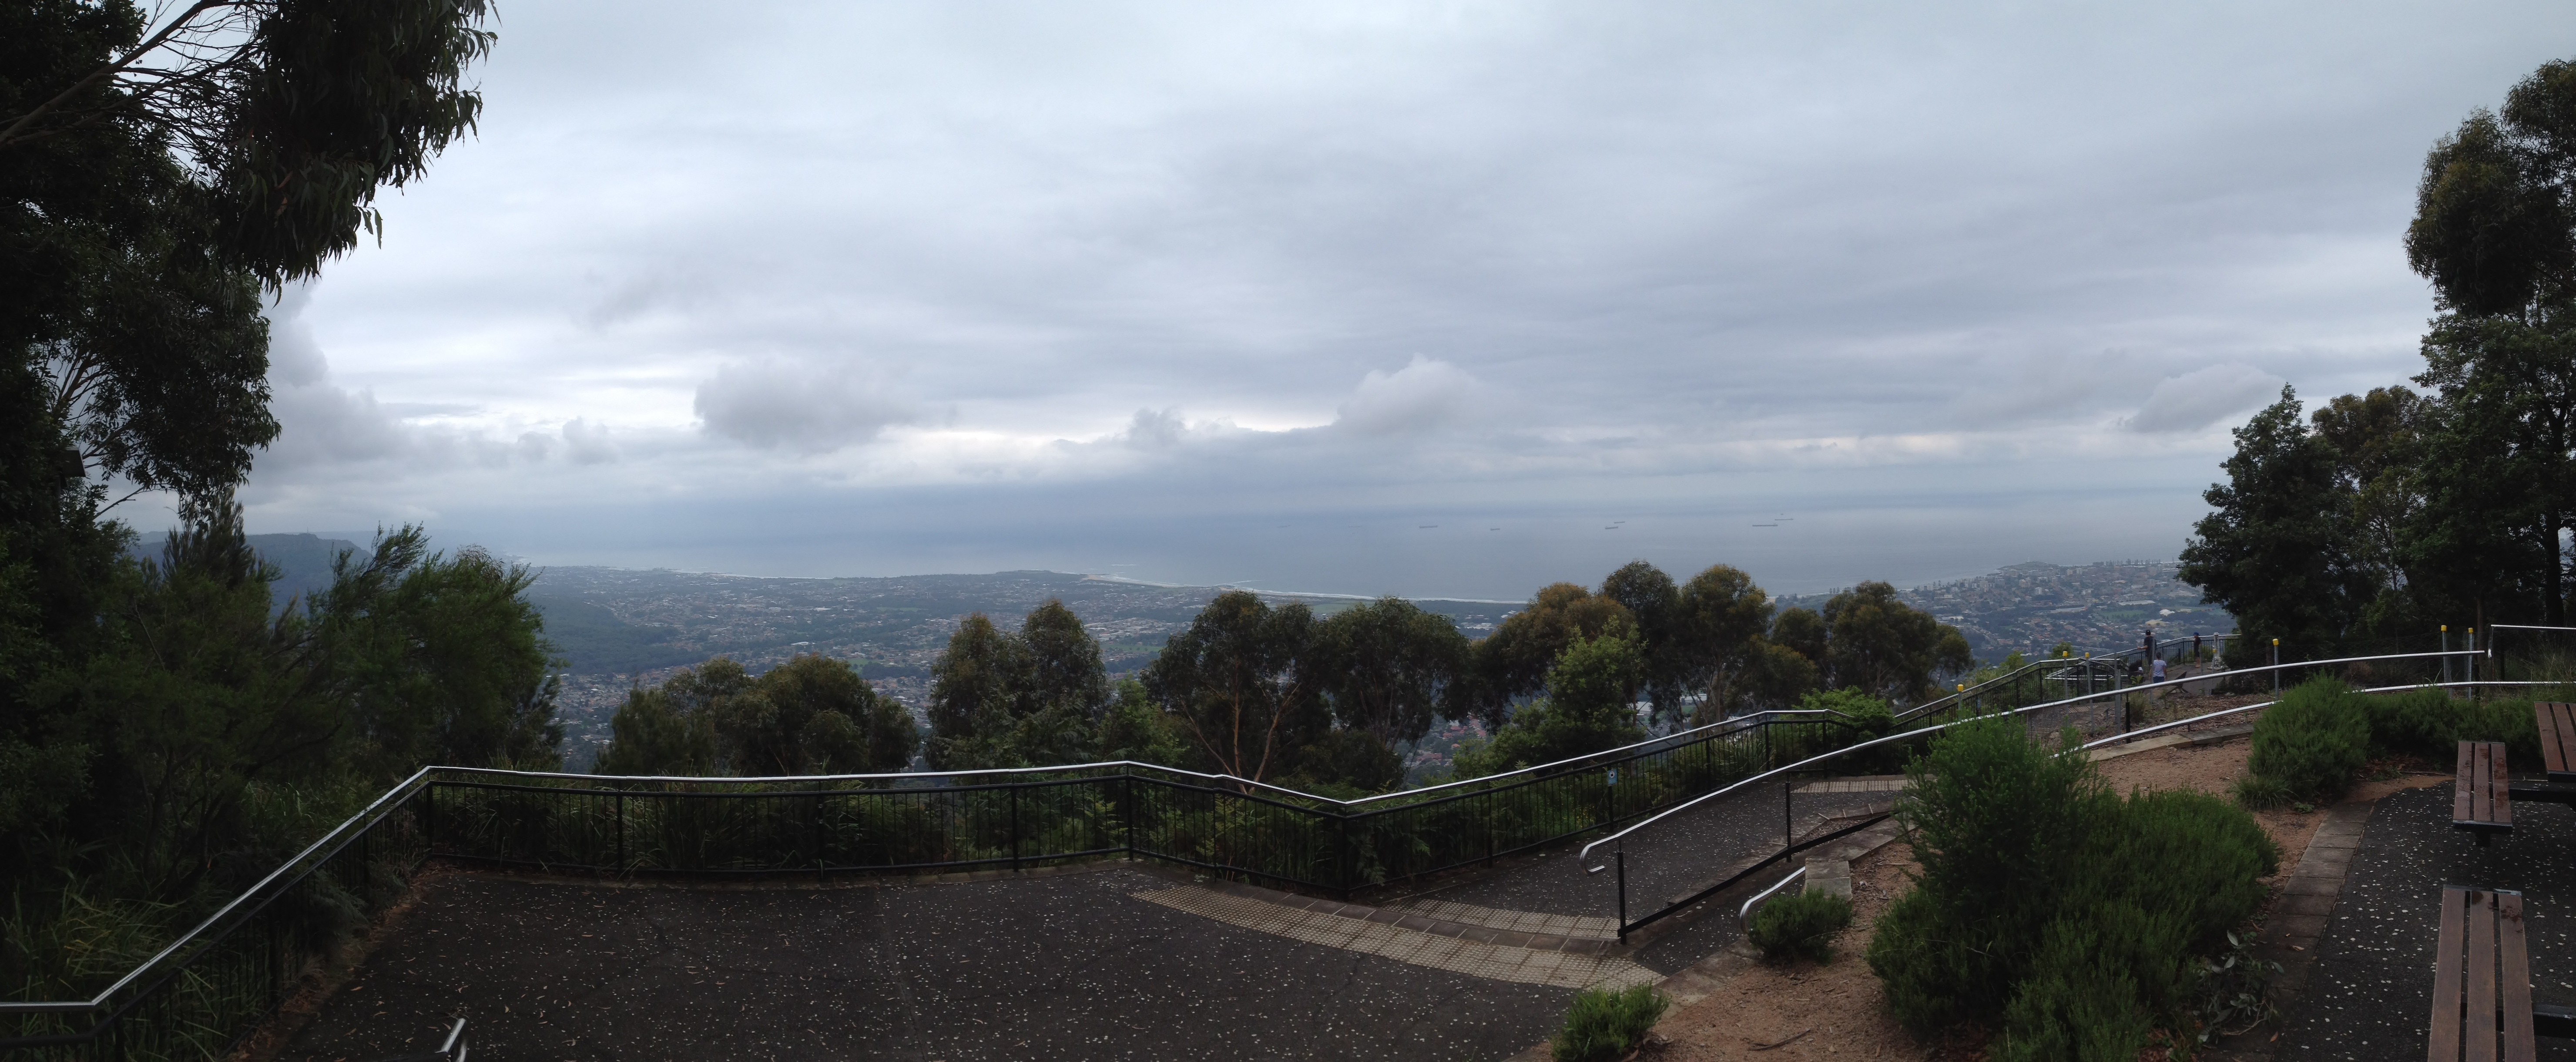 mount keira lookout - photo #35